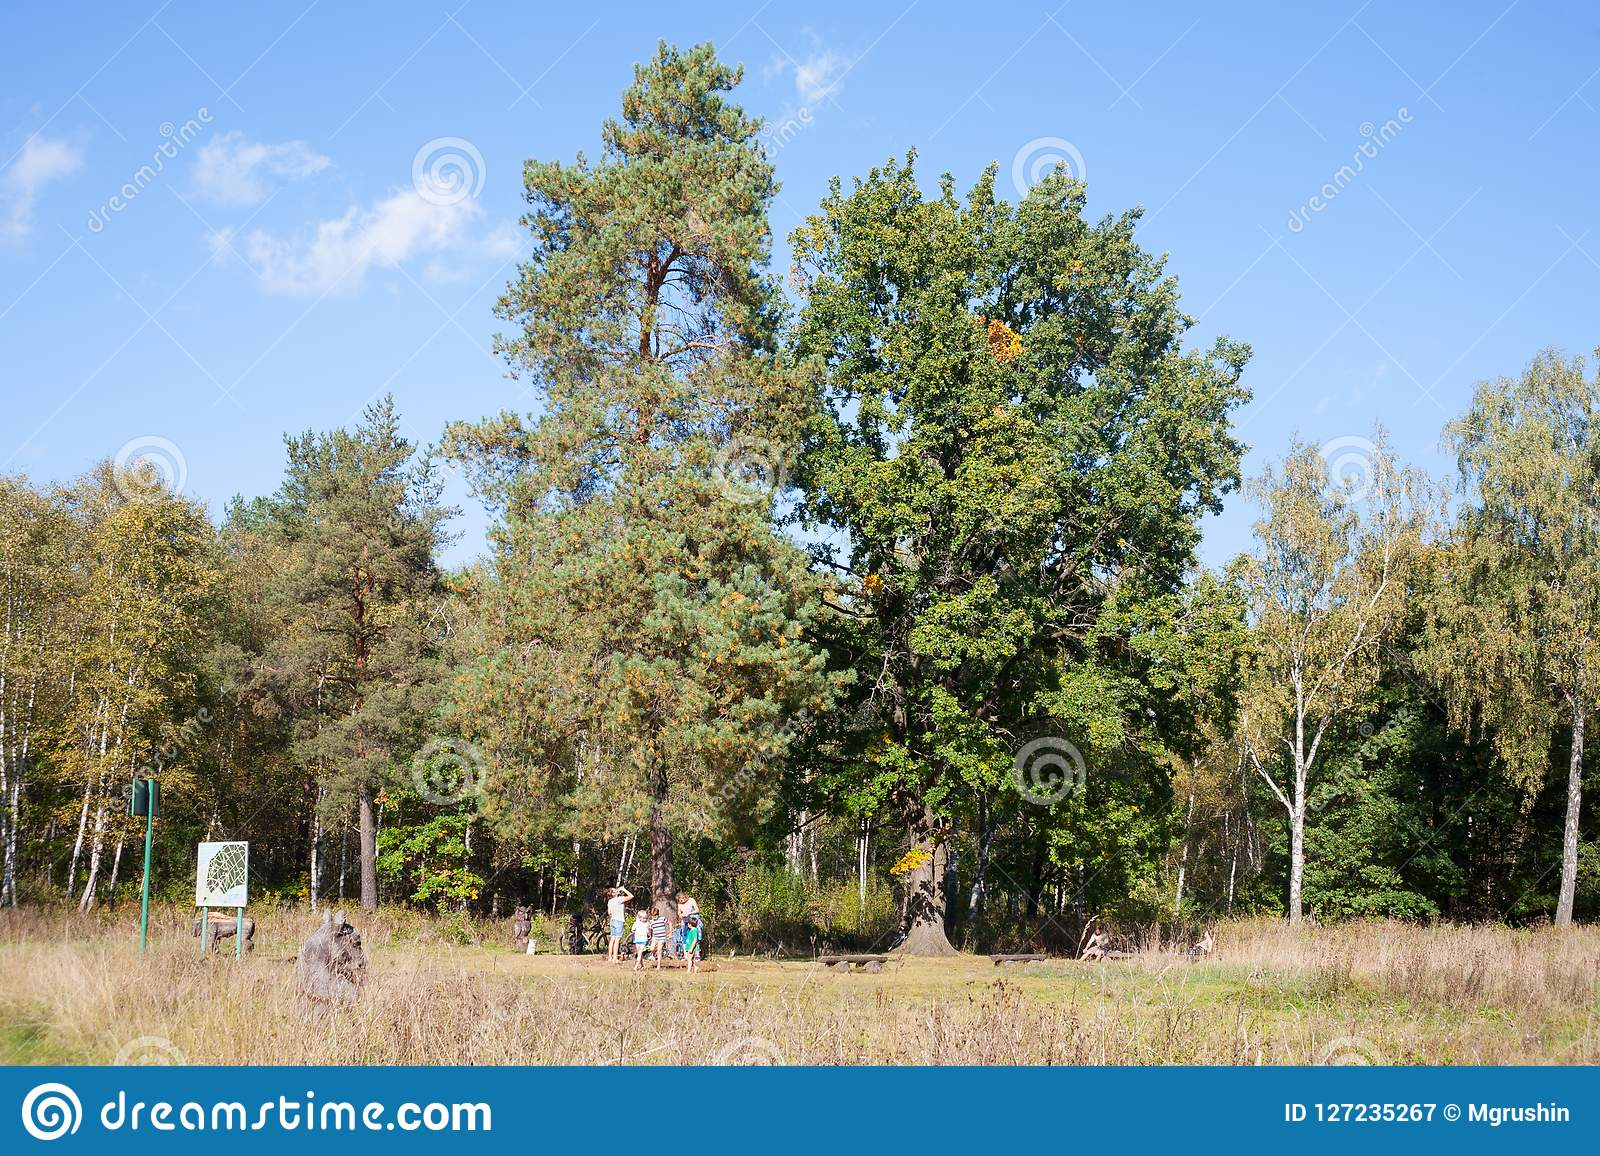 Forest and people in Losiny Ostrov National Park 20.09.2018